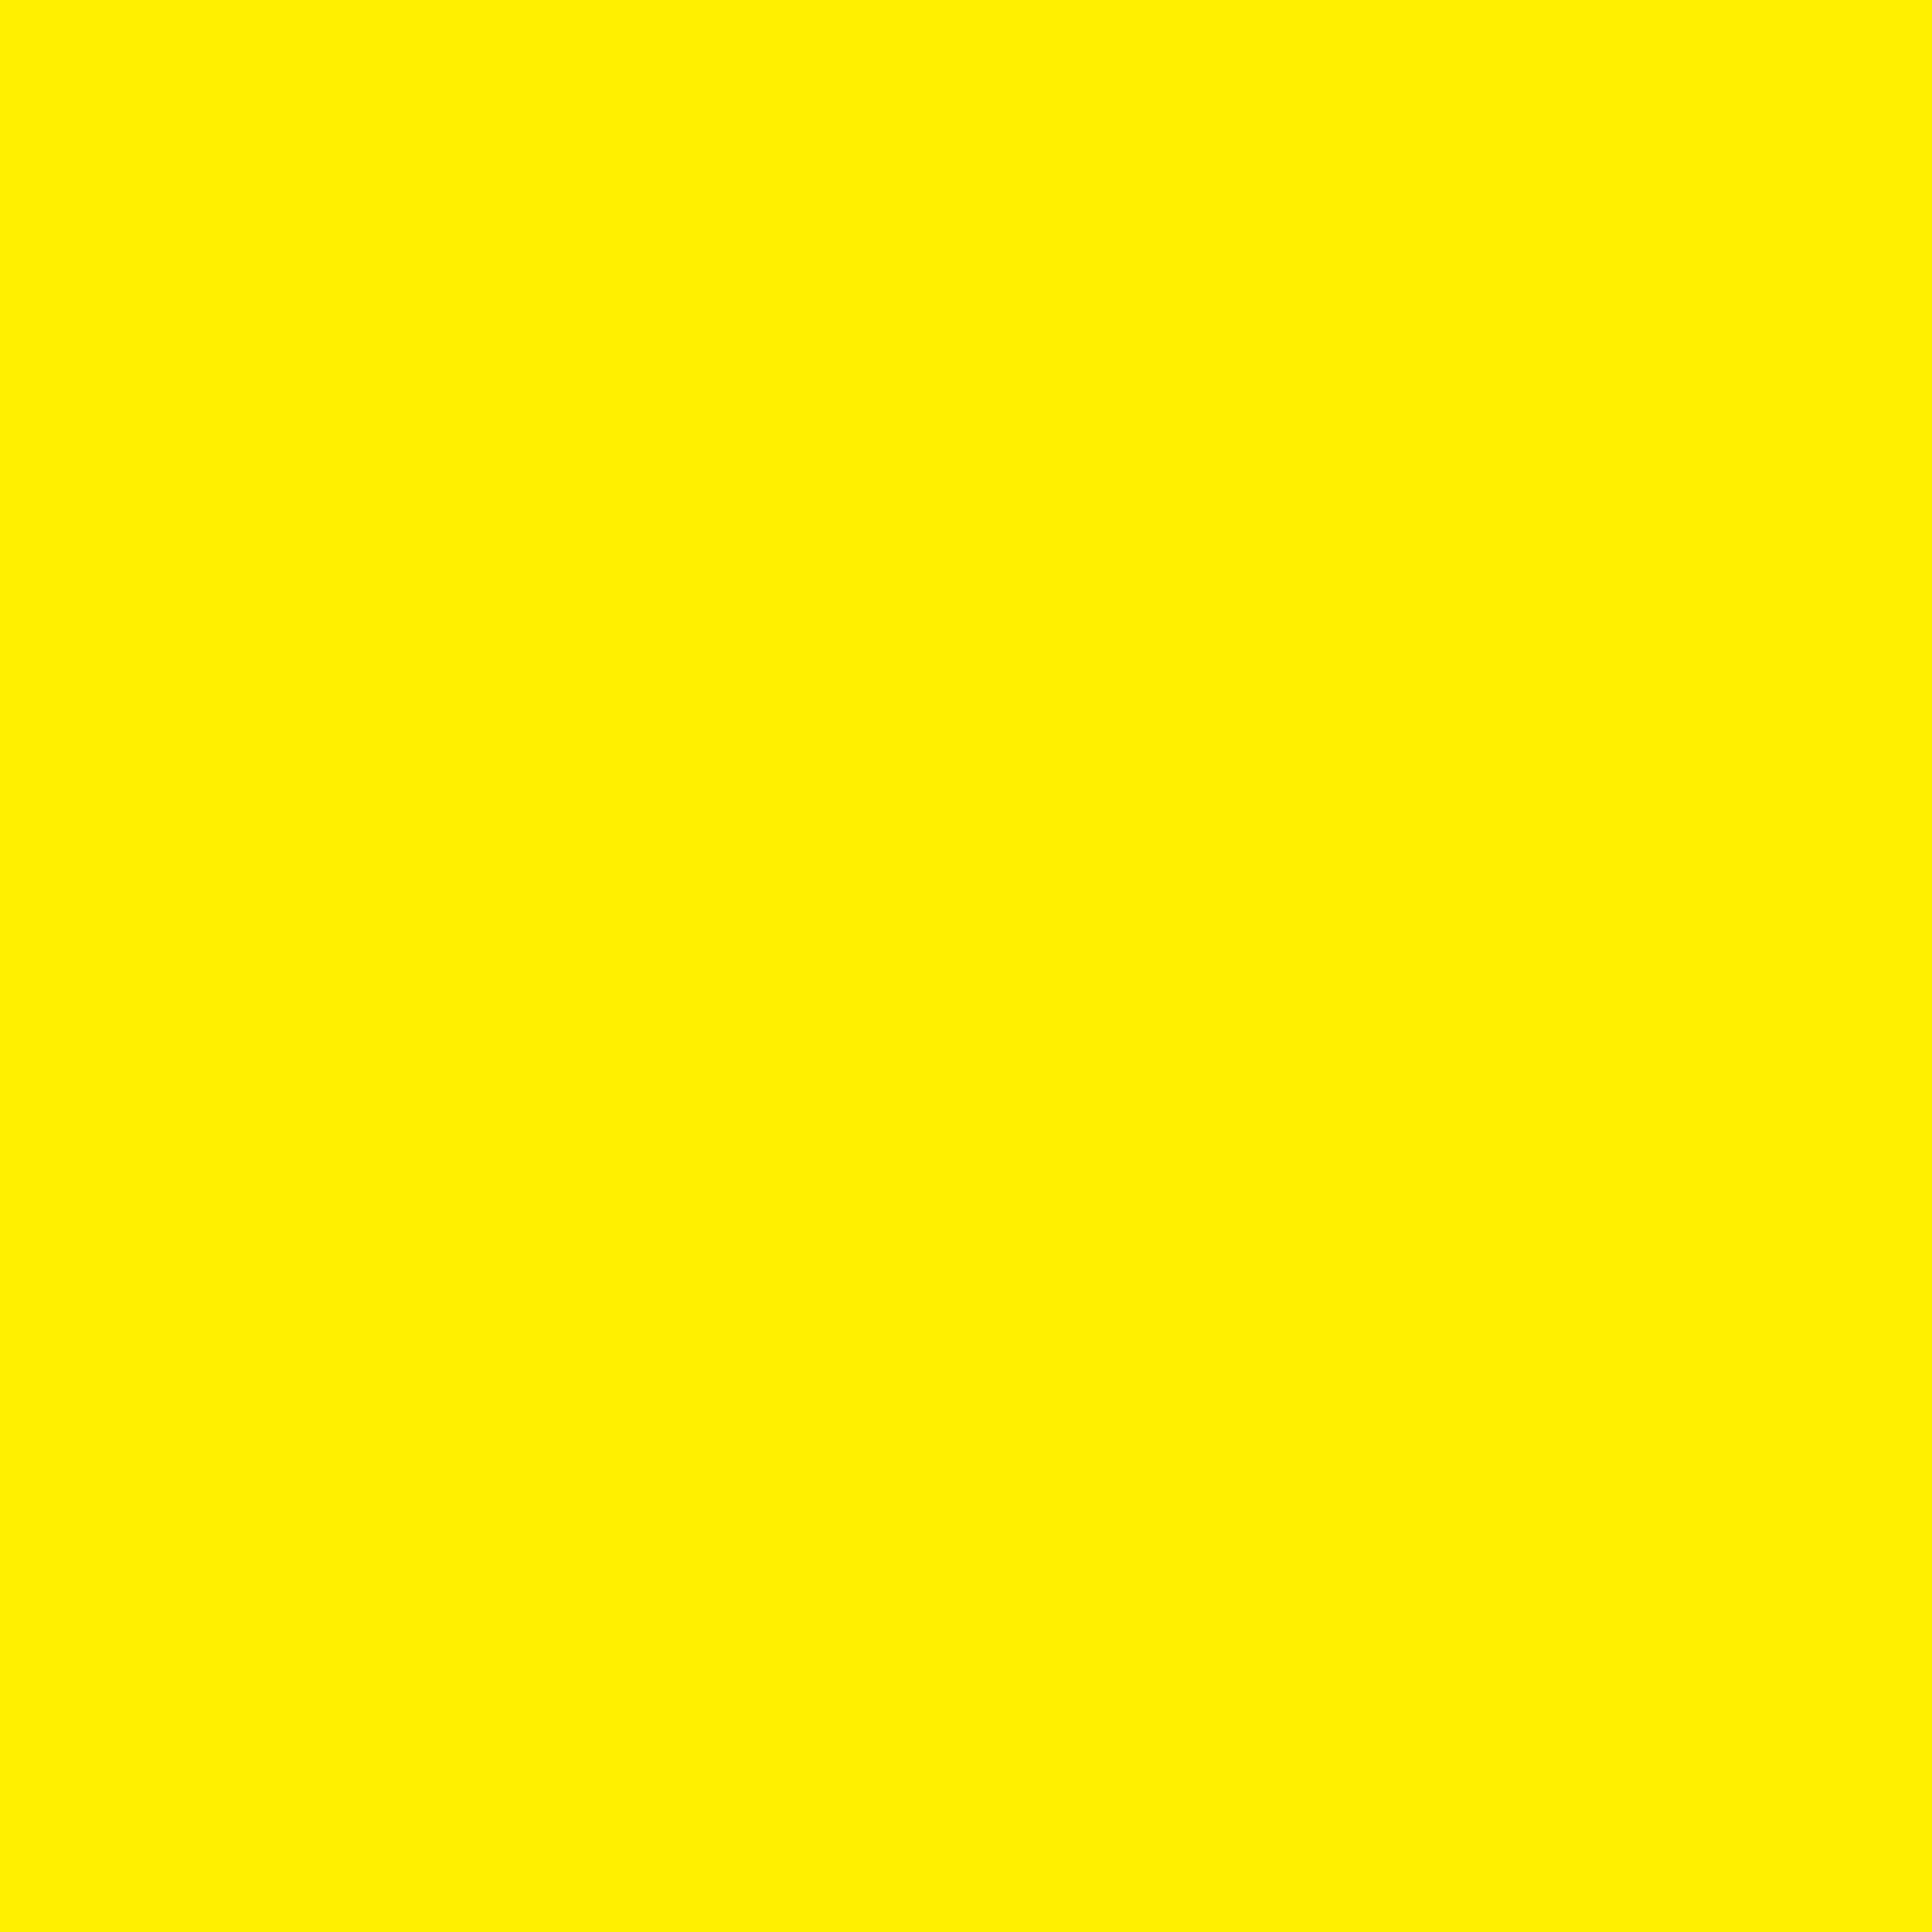 3600x3600 Yellow Rose Solid Color Background